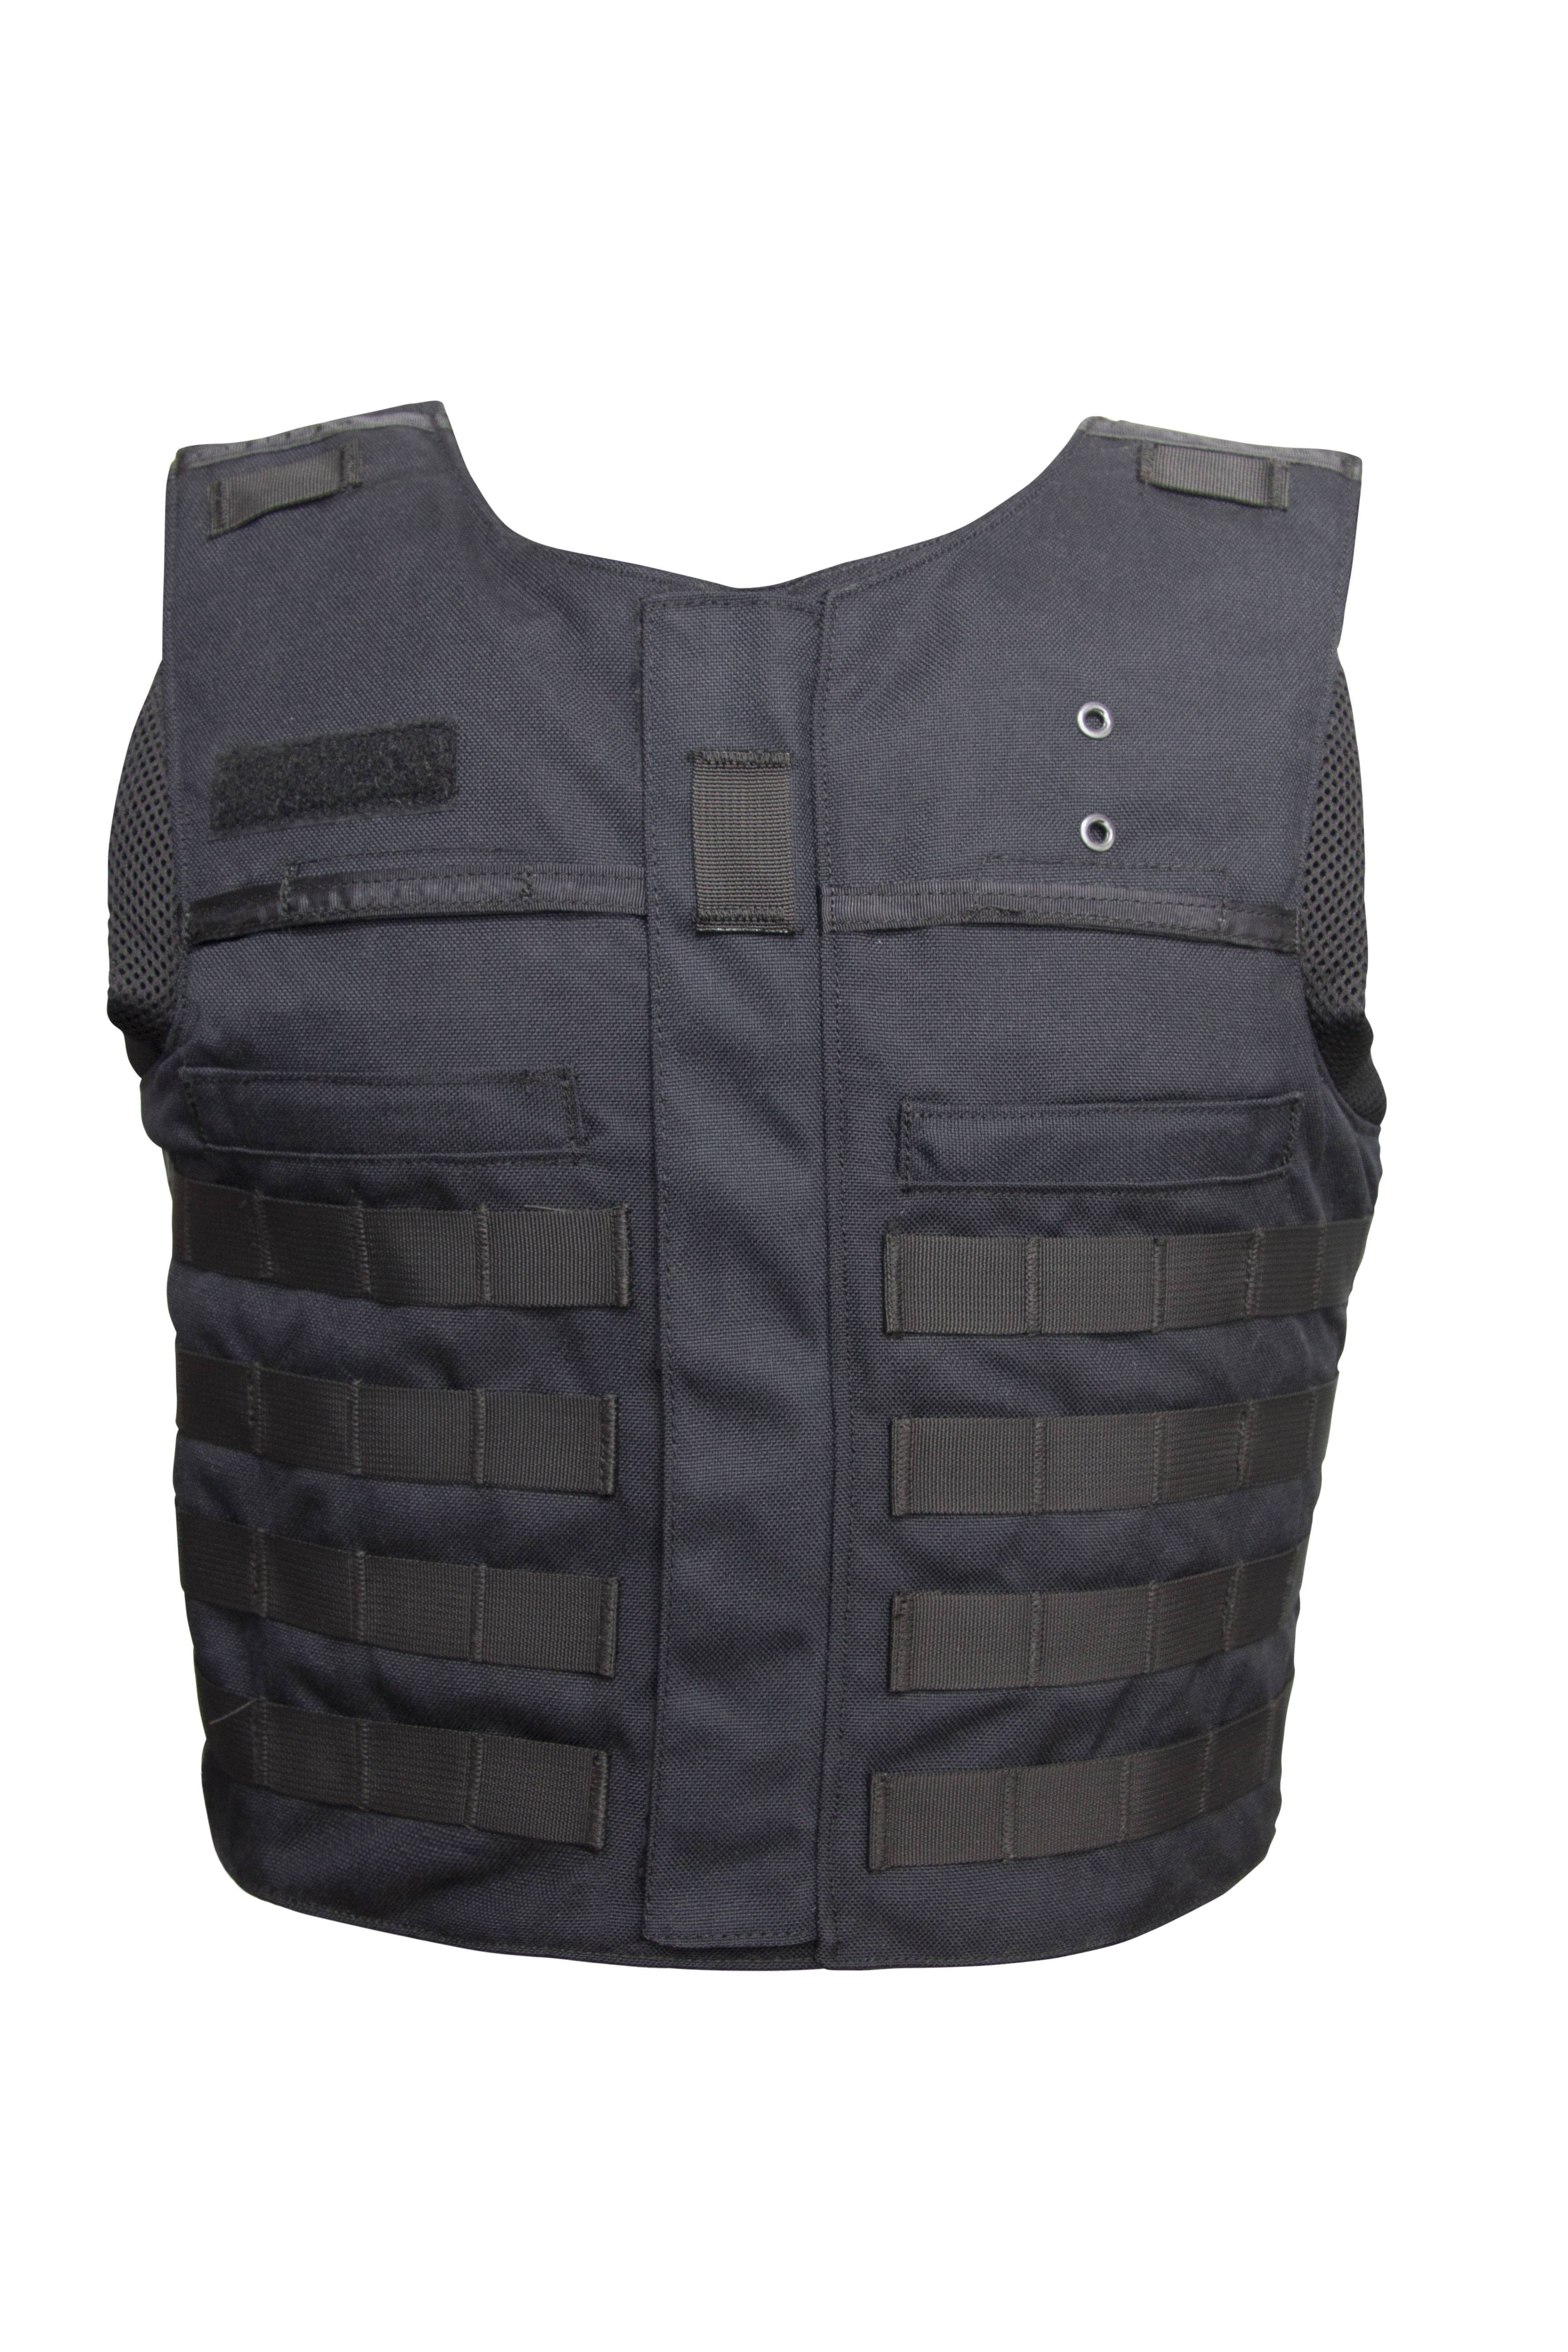 GH-APB-PKG GH Tactical APB Carrier - Includes 9 MOLLE Pouches (No Panels)-GH Armor Systems